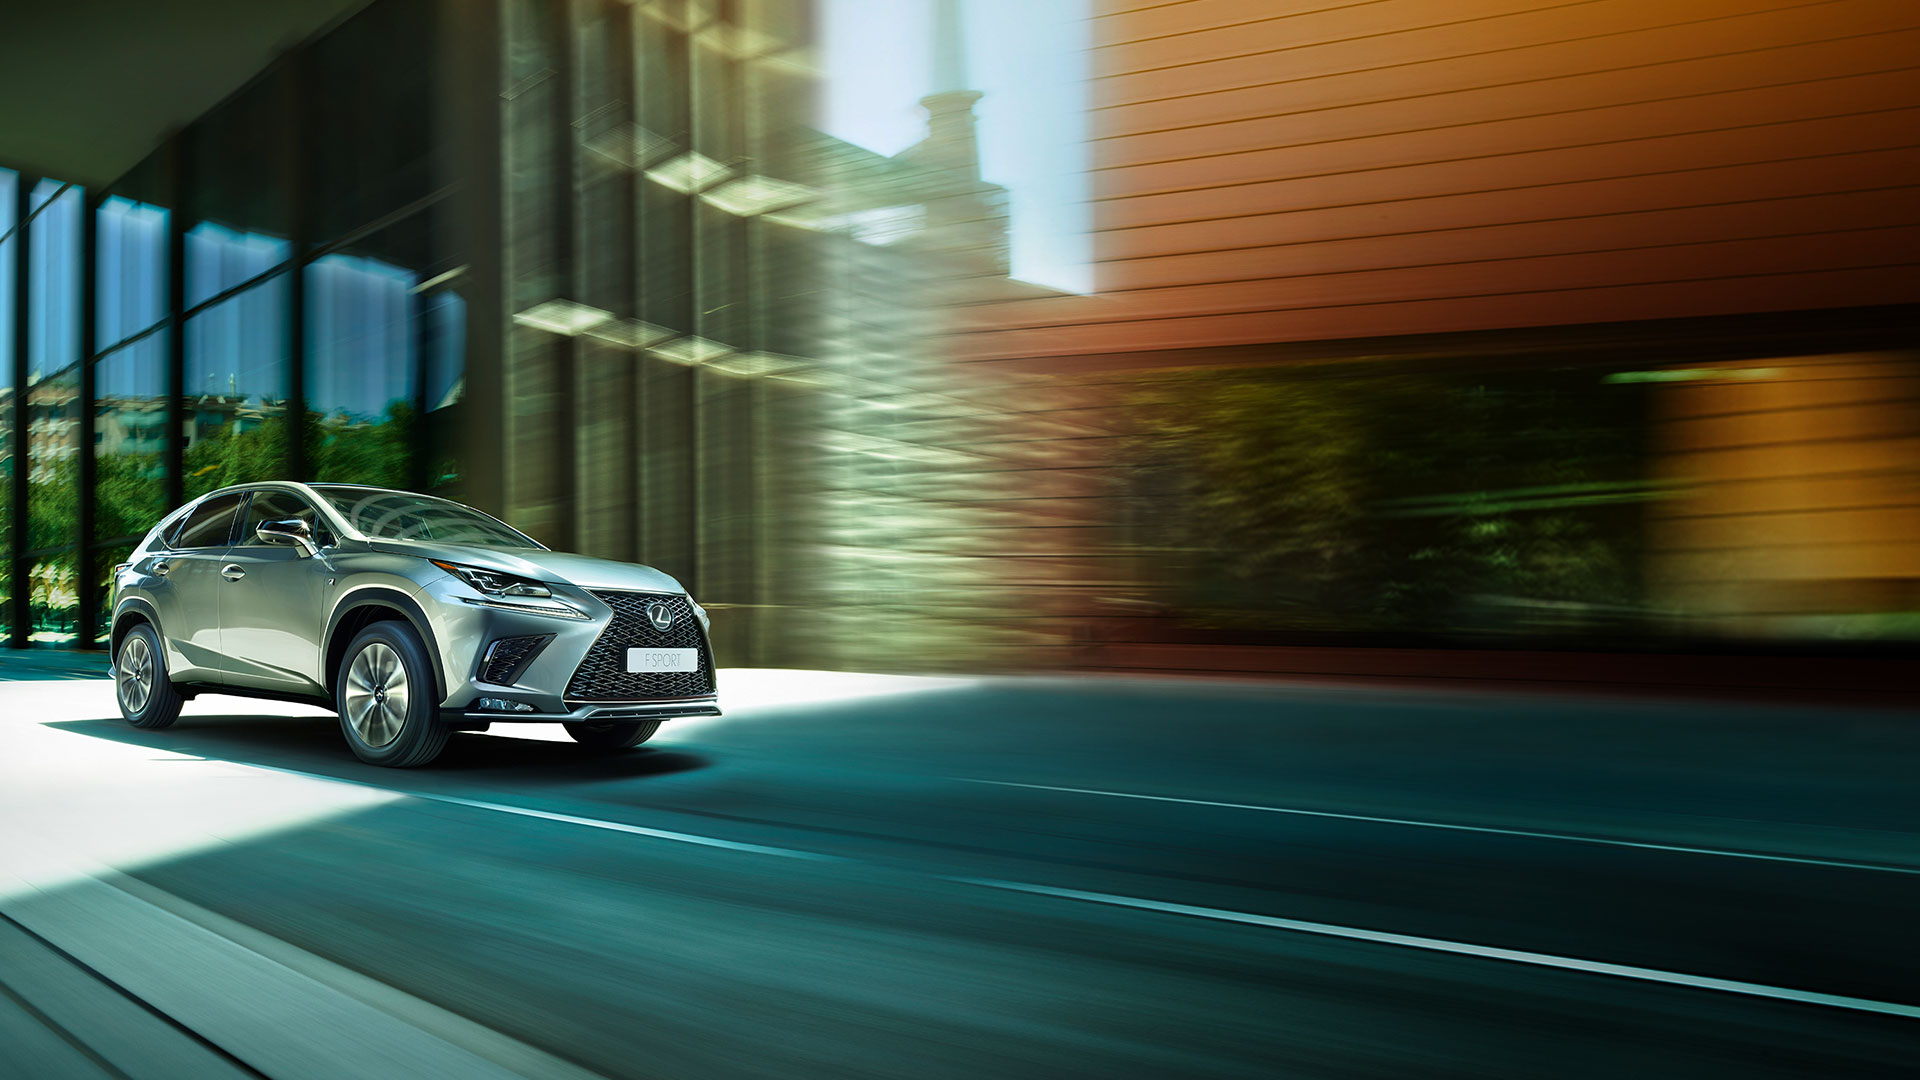 2018 lexus nx 300 f sport key features